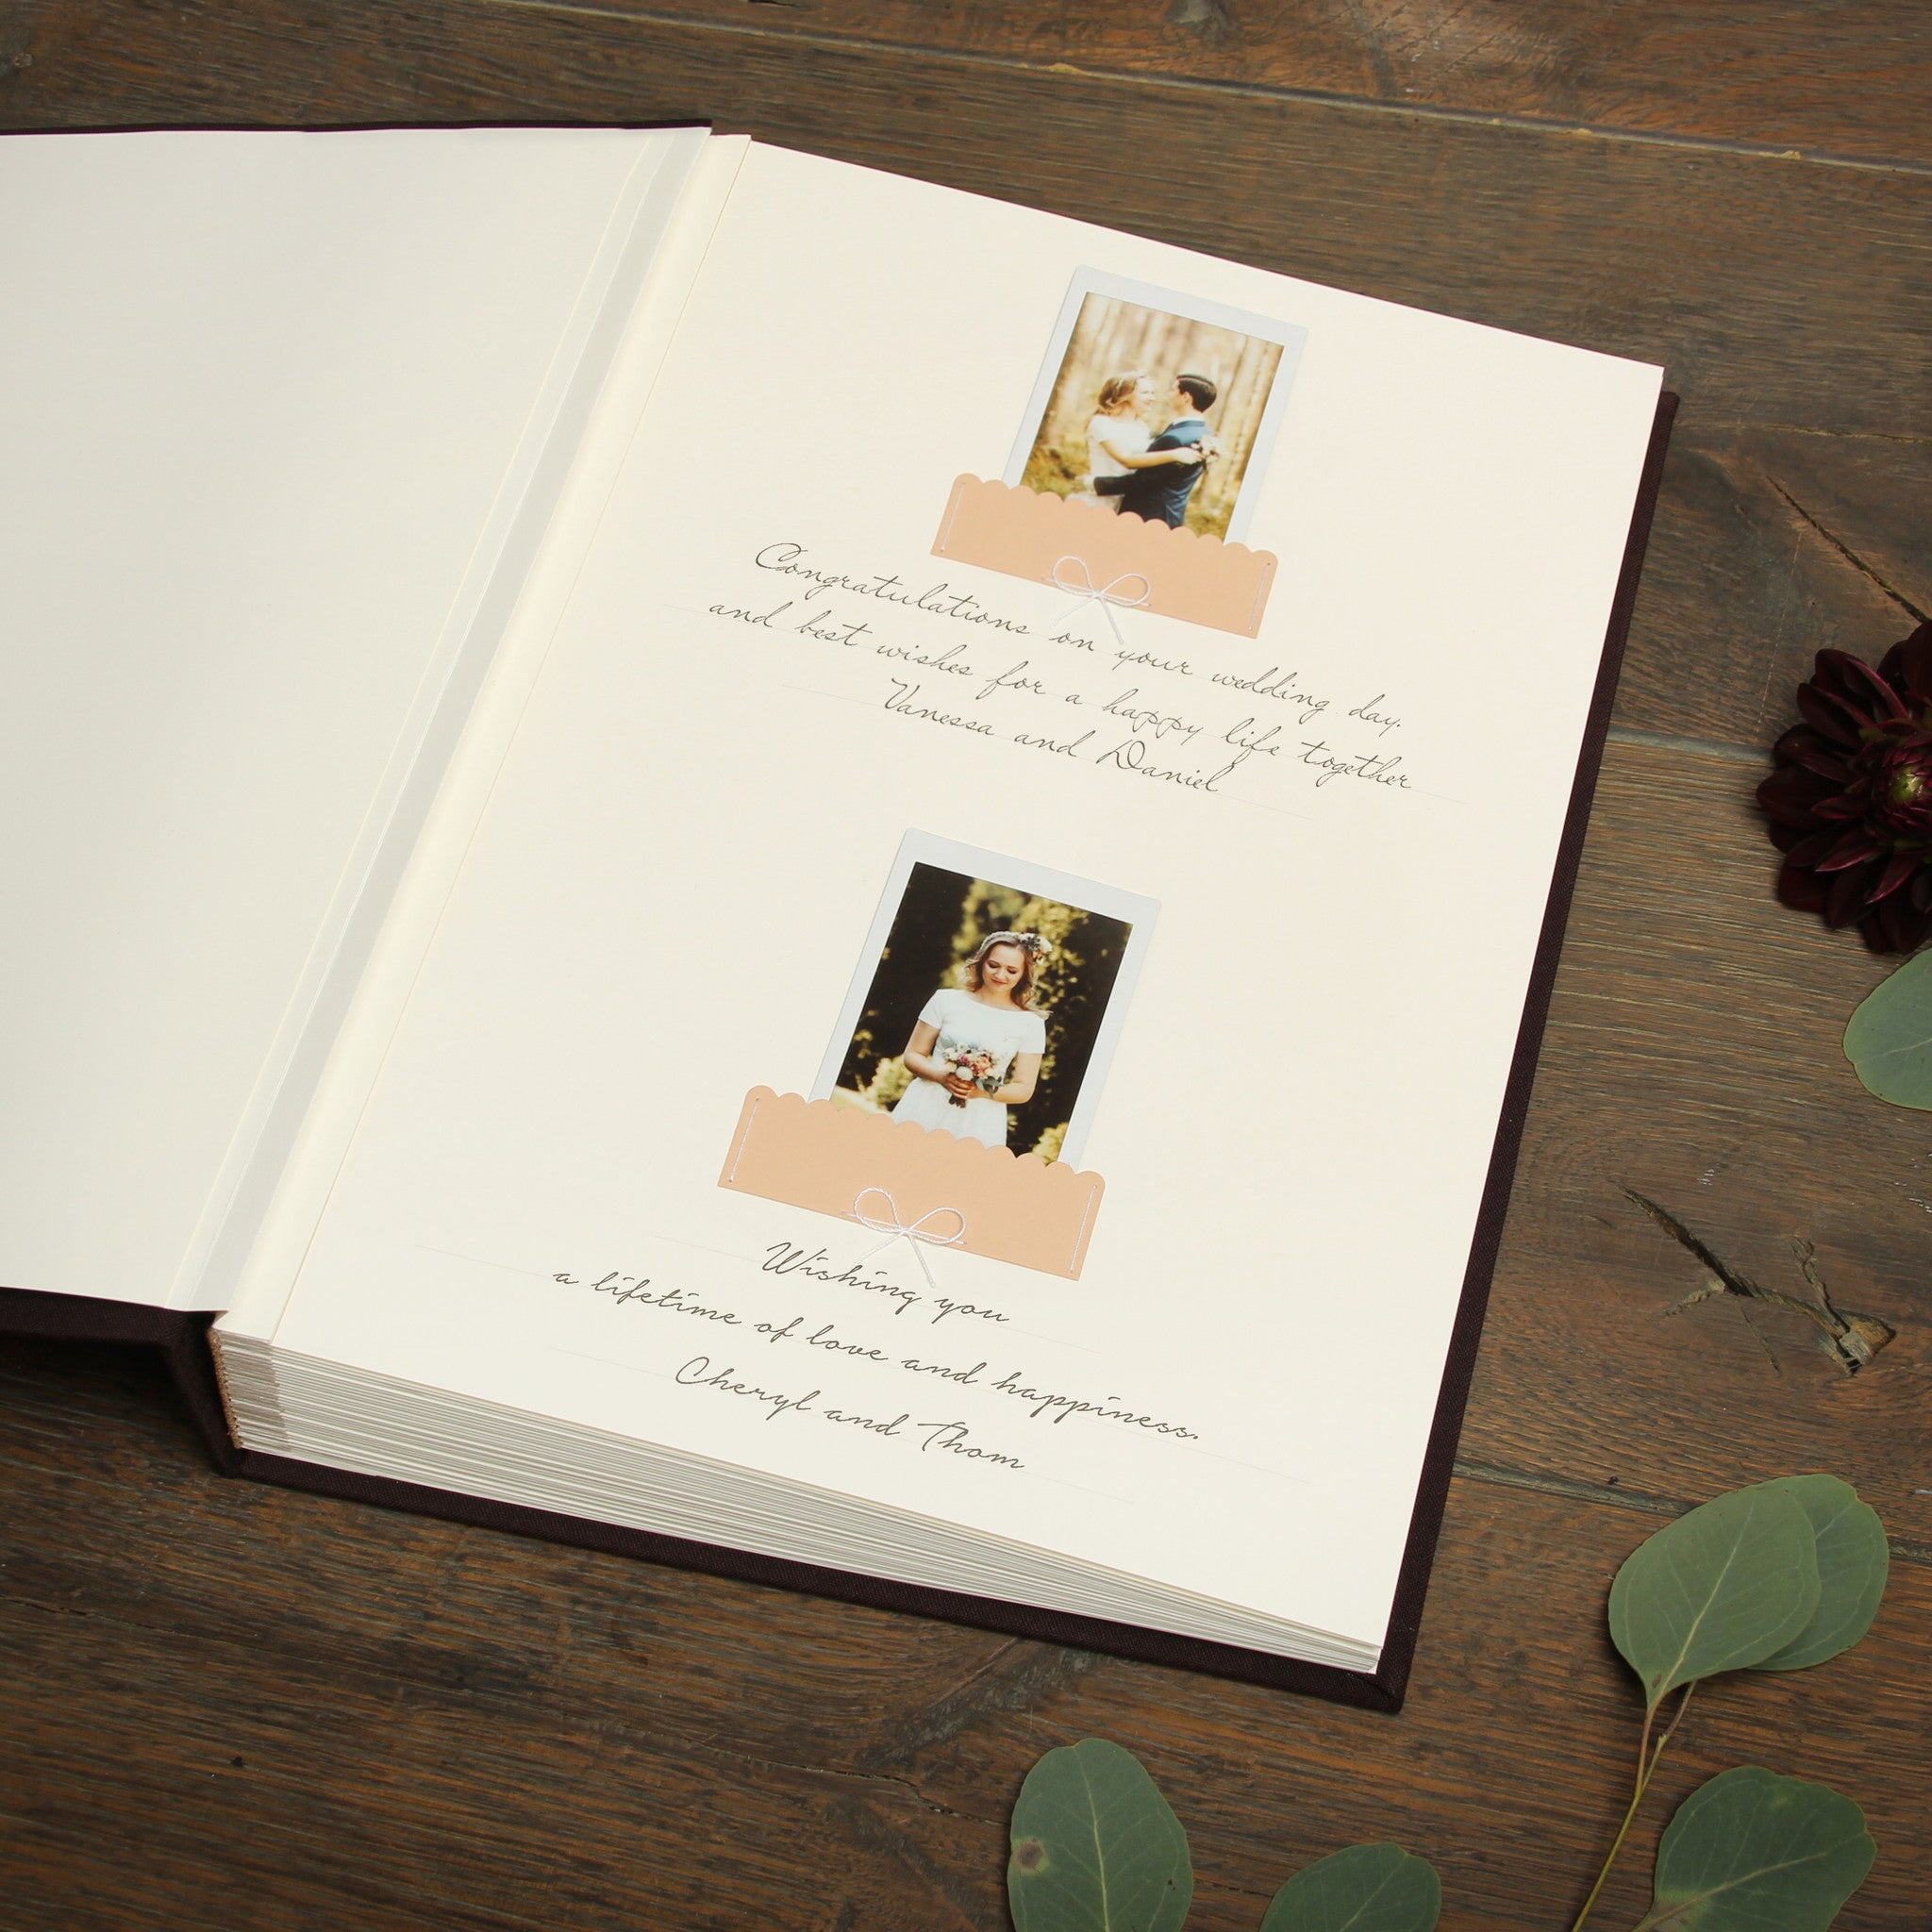 Pocket Guest Book: Chocolate Instant Wedding Guest Book Album With White